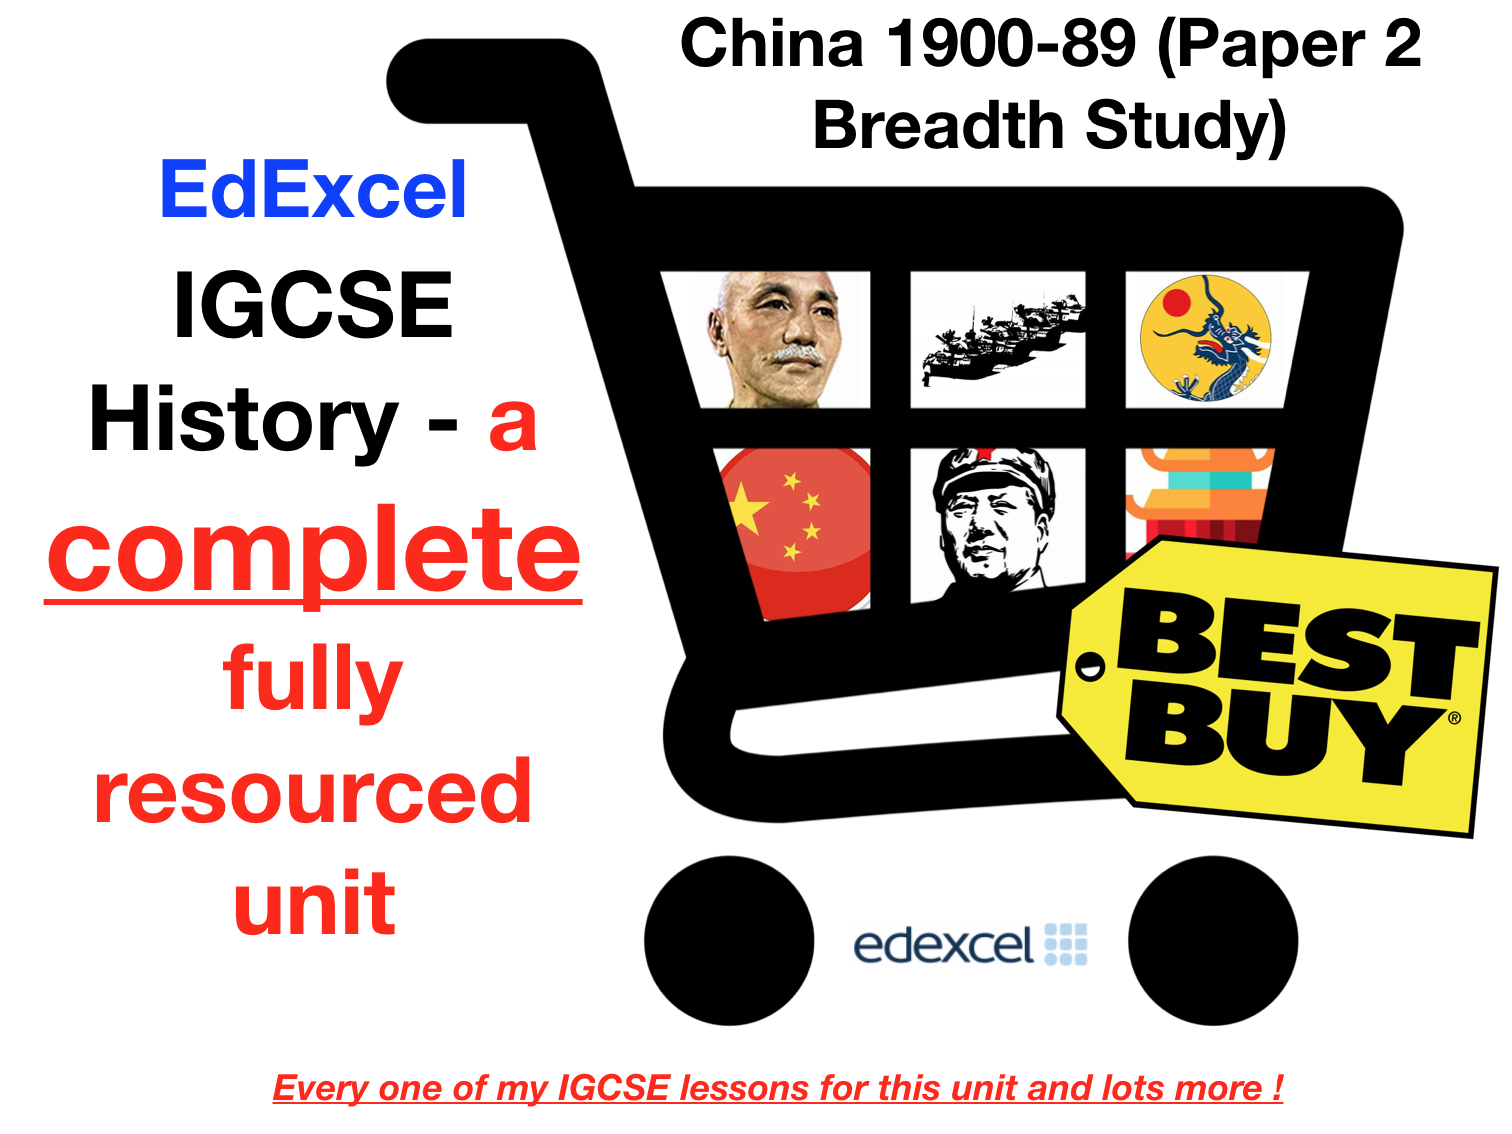 EdExcel IGCSE History China 1900-1989 - Full Unit Paper 2 Breadth Study Bundle (with Revision Menu)